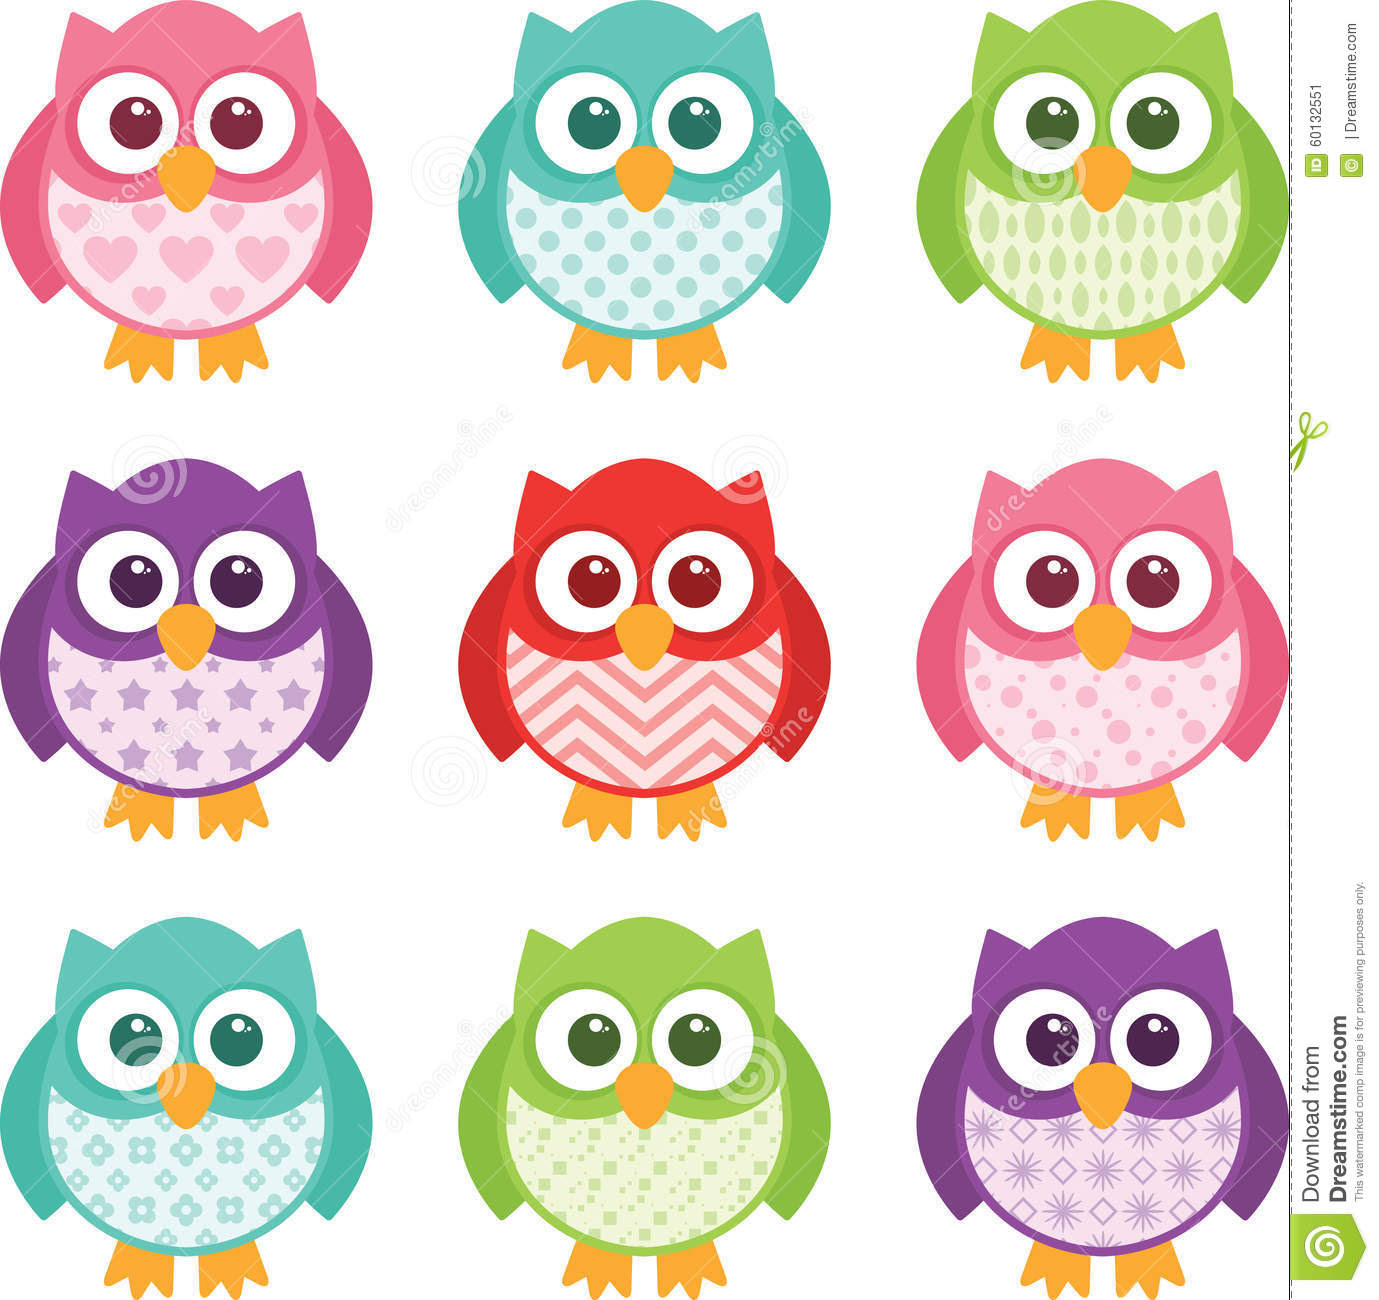 Cute Simple Cartoon Patterned Owls Stock Vector - Image: 60132551